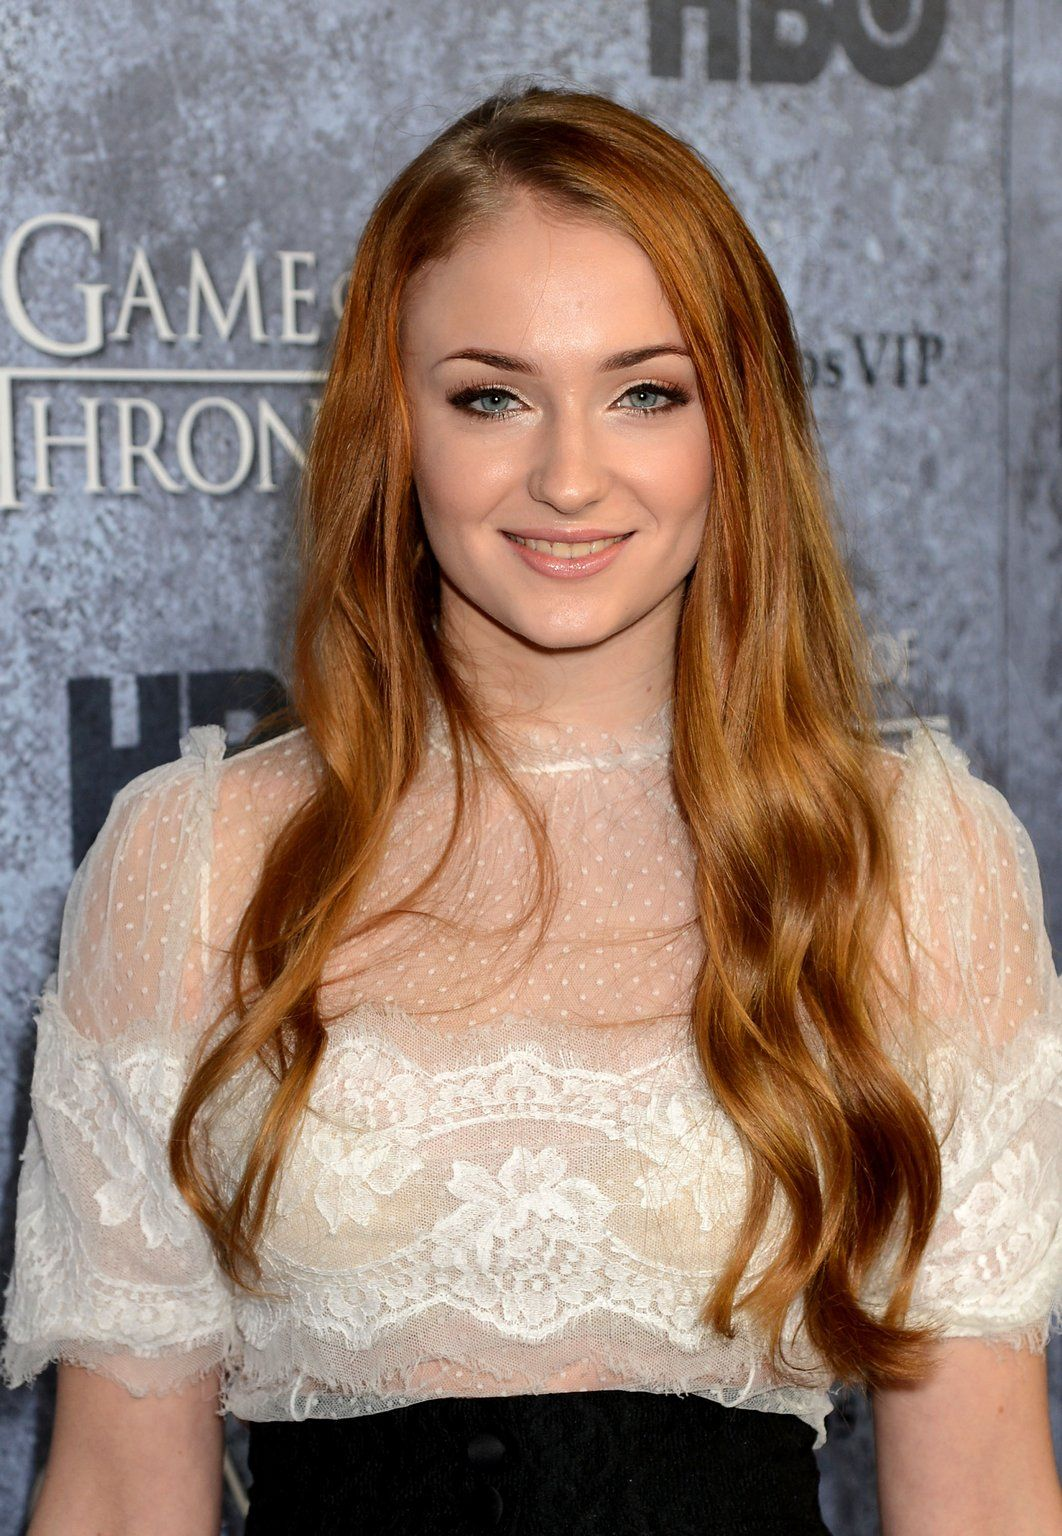 Sophie-Turner---Game-of-Thrones-Season-3-Premiere.